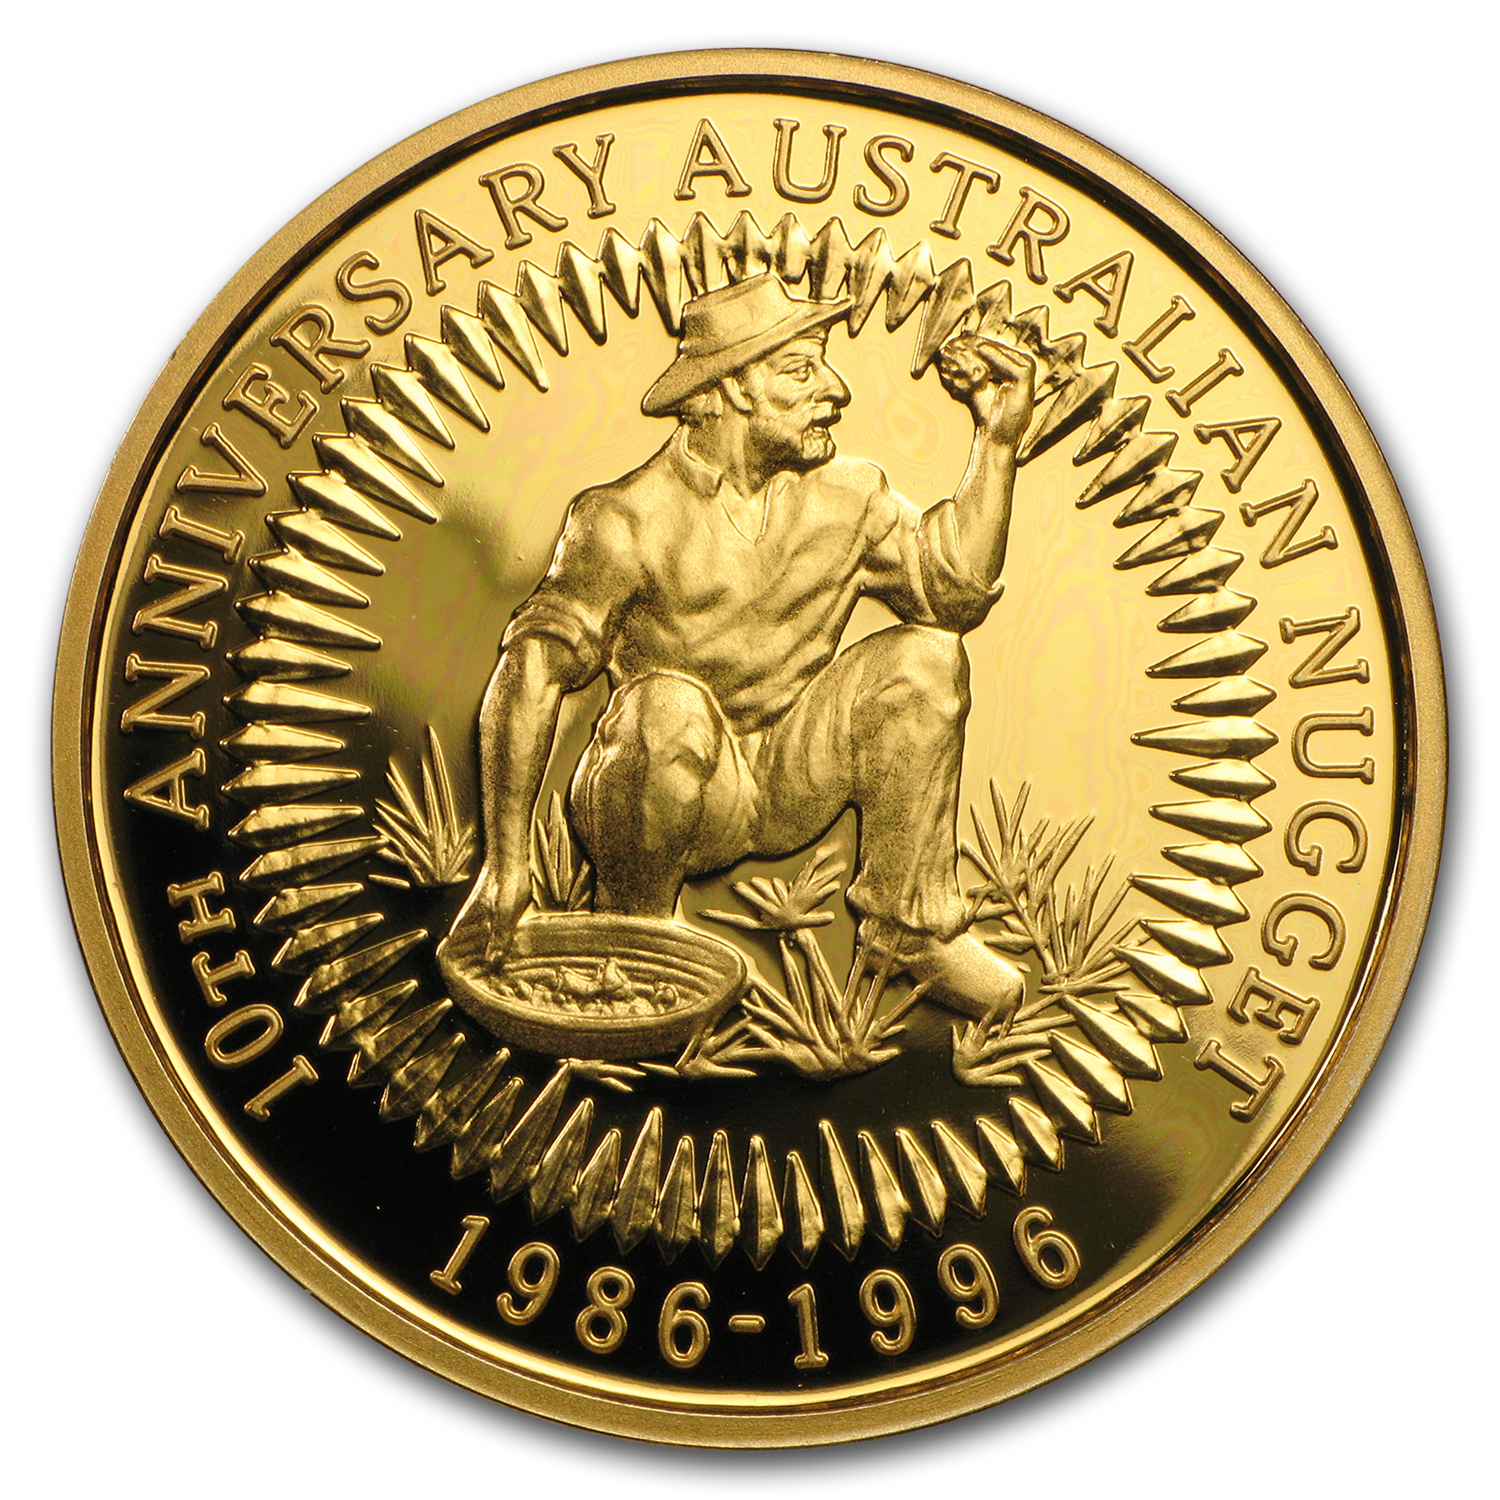 1996 4 coin Australian Proof Gold Nugget Set